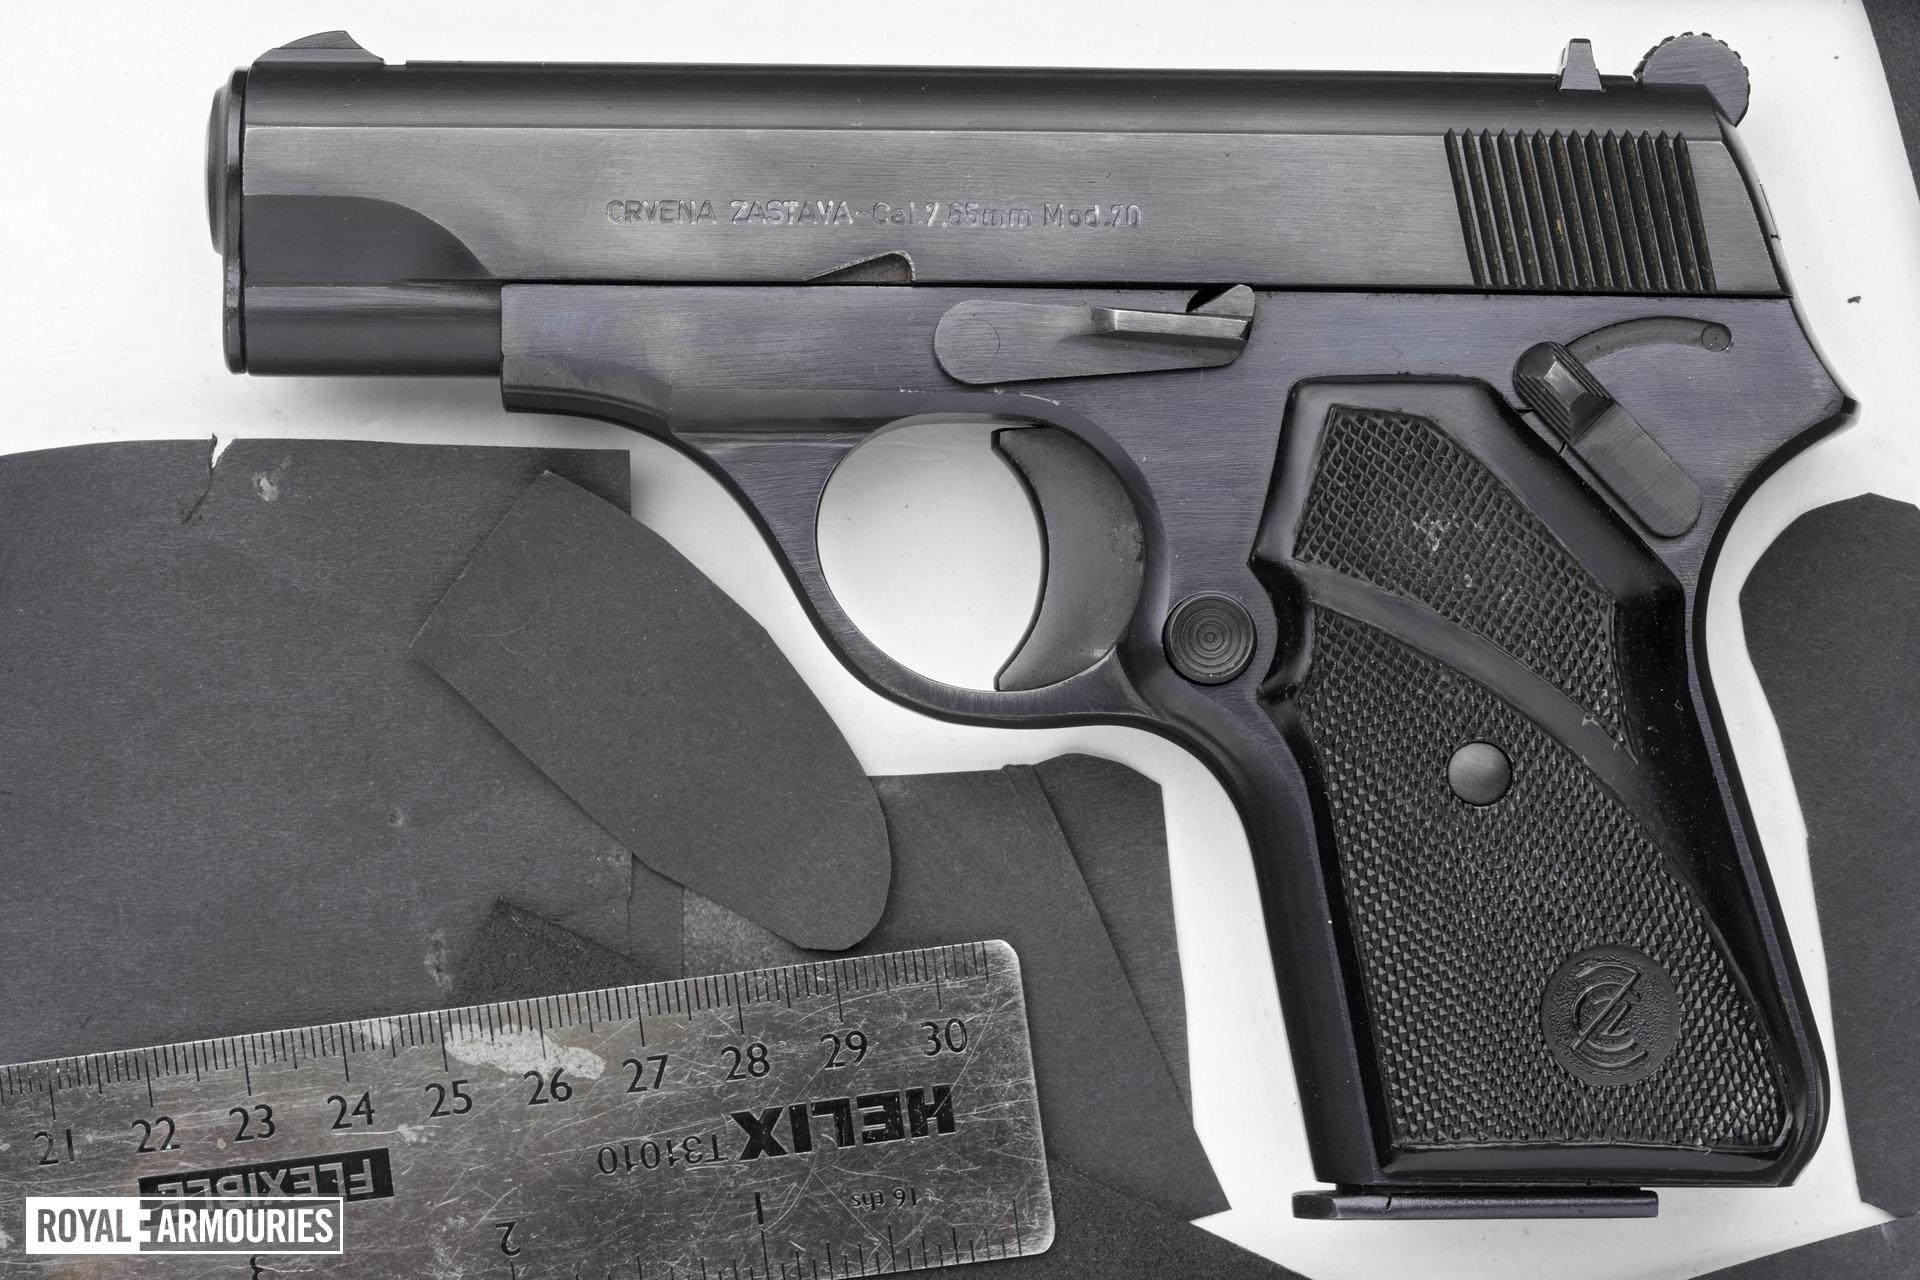 Centrefire self-loading pistol - Crvena Zastava Model 70